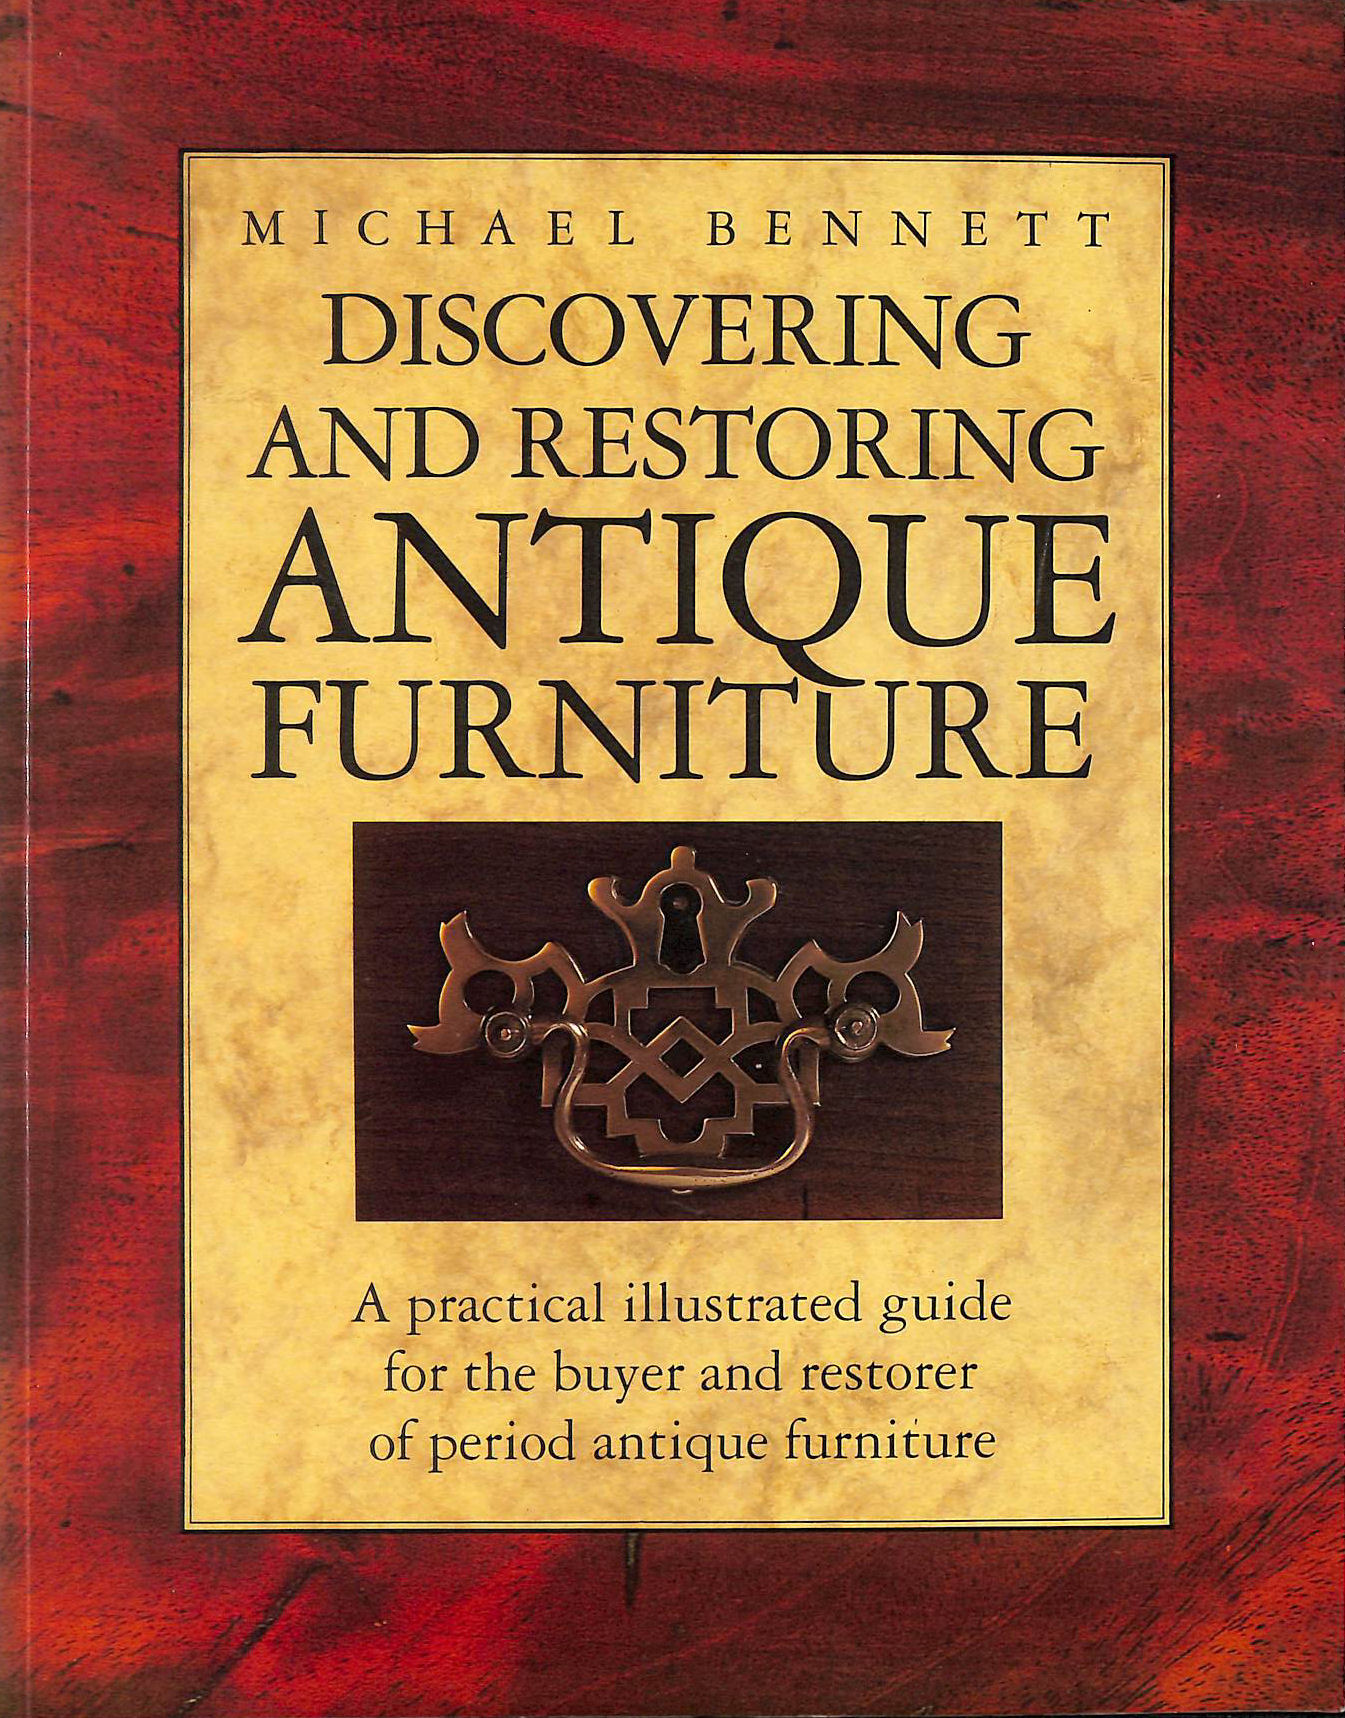 Image for Discovering And Restoring Antique Furniture: A Practical Illustrated Guide For The Buyer And Restorer Of Antique Furniture